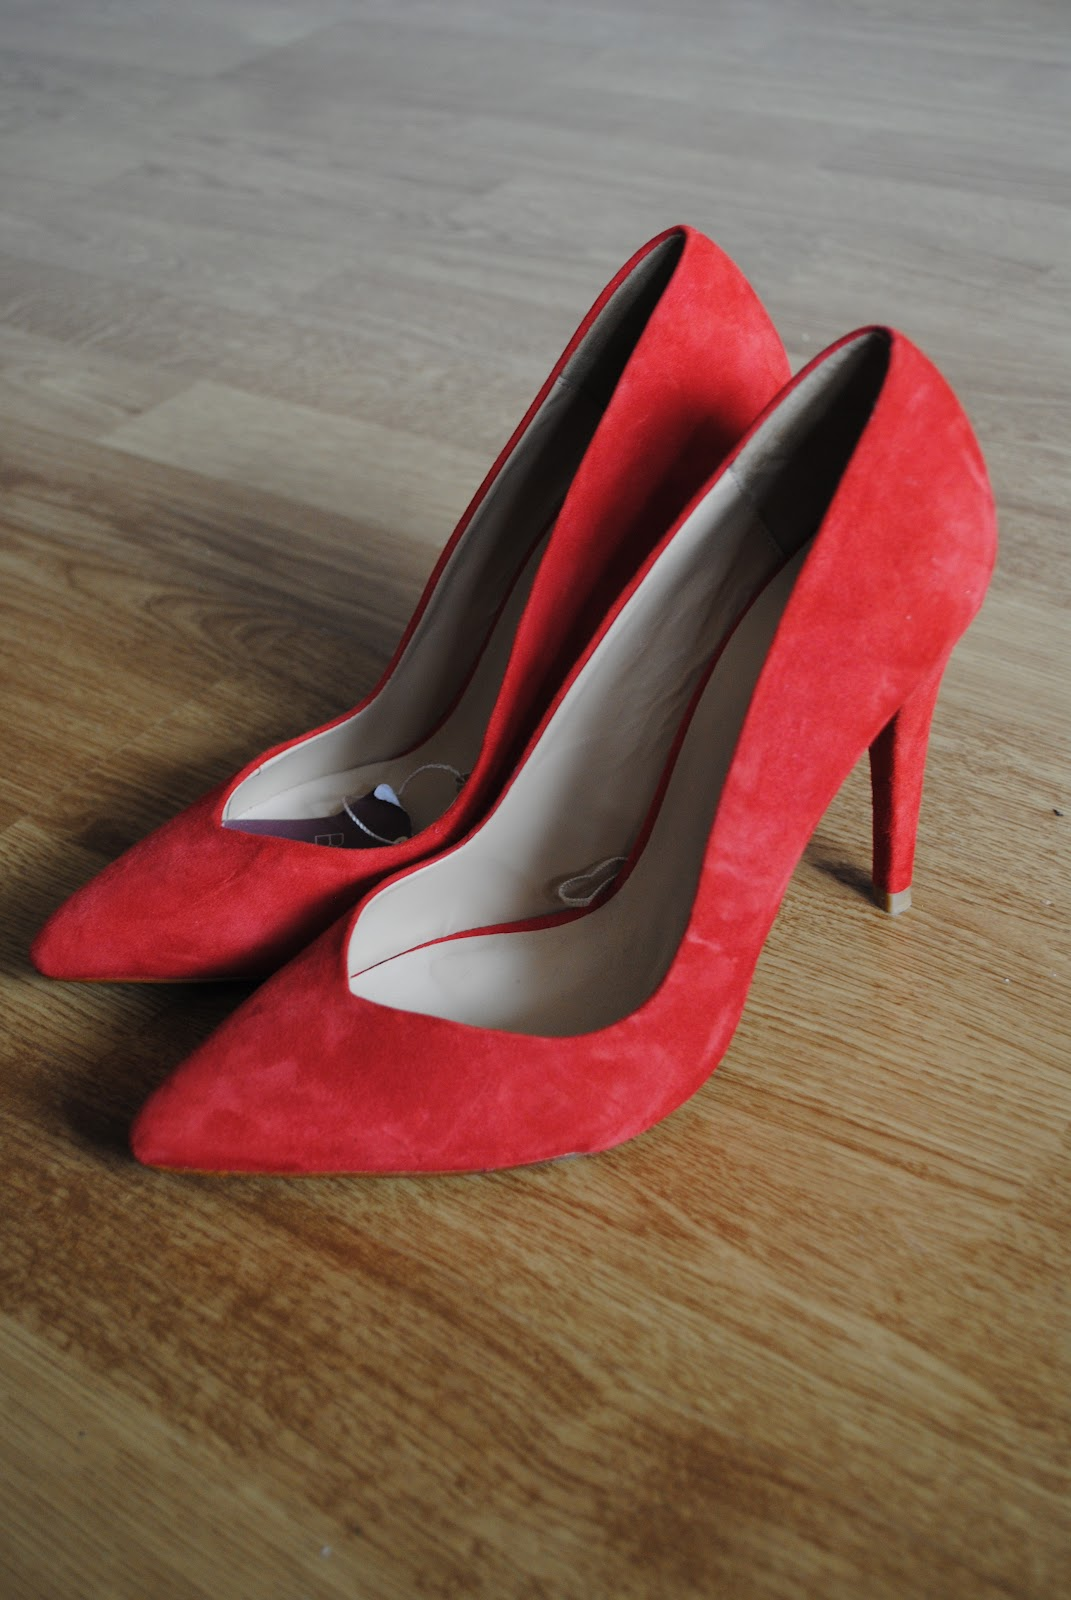 every woman needs a pair of red shoes